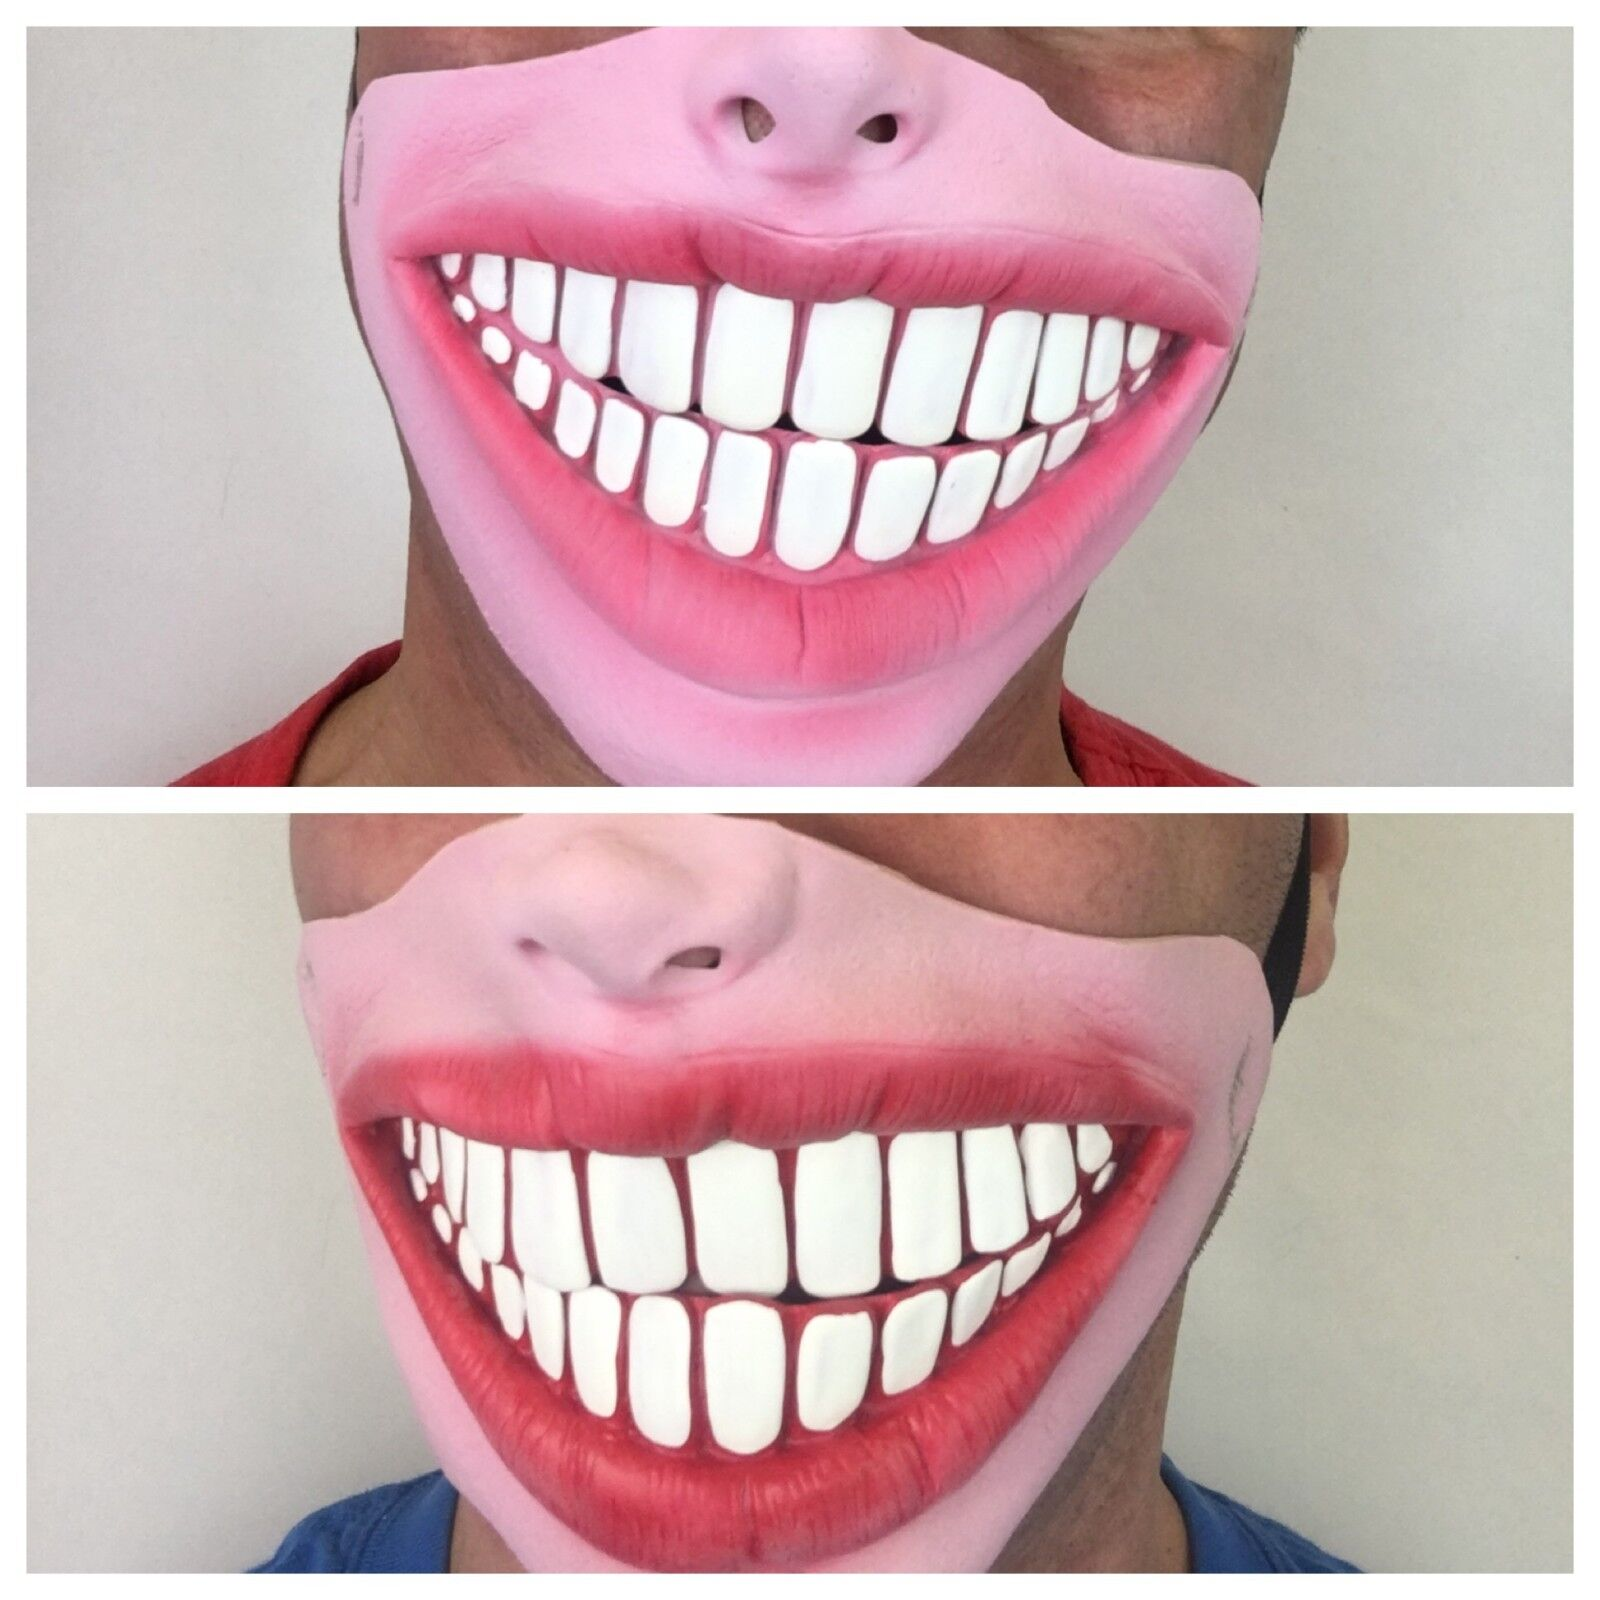 Fancy dress funny teeth images